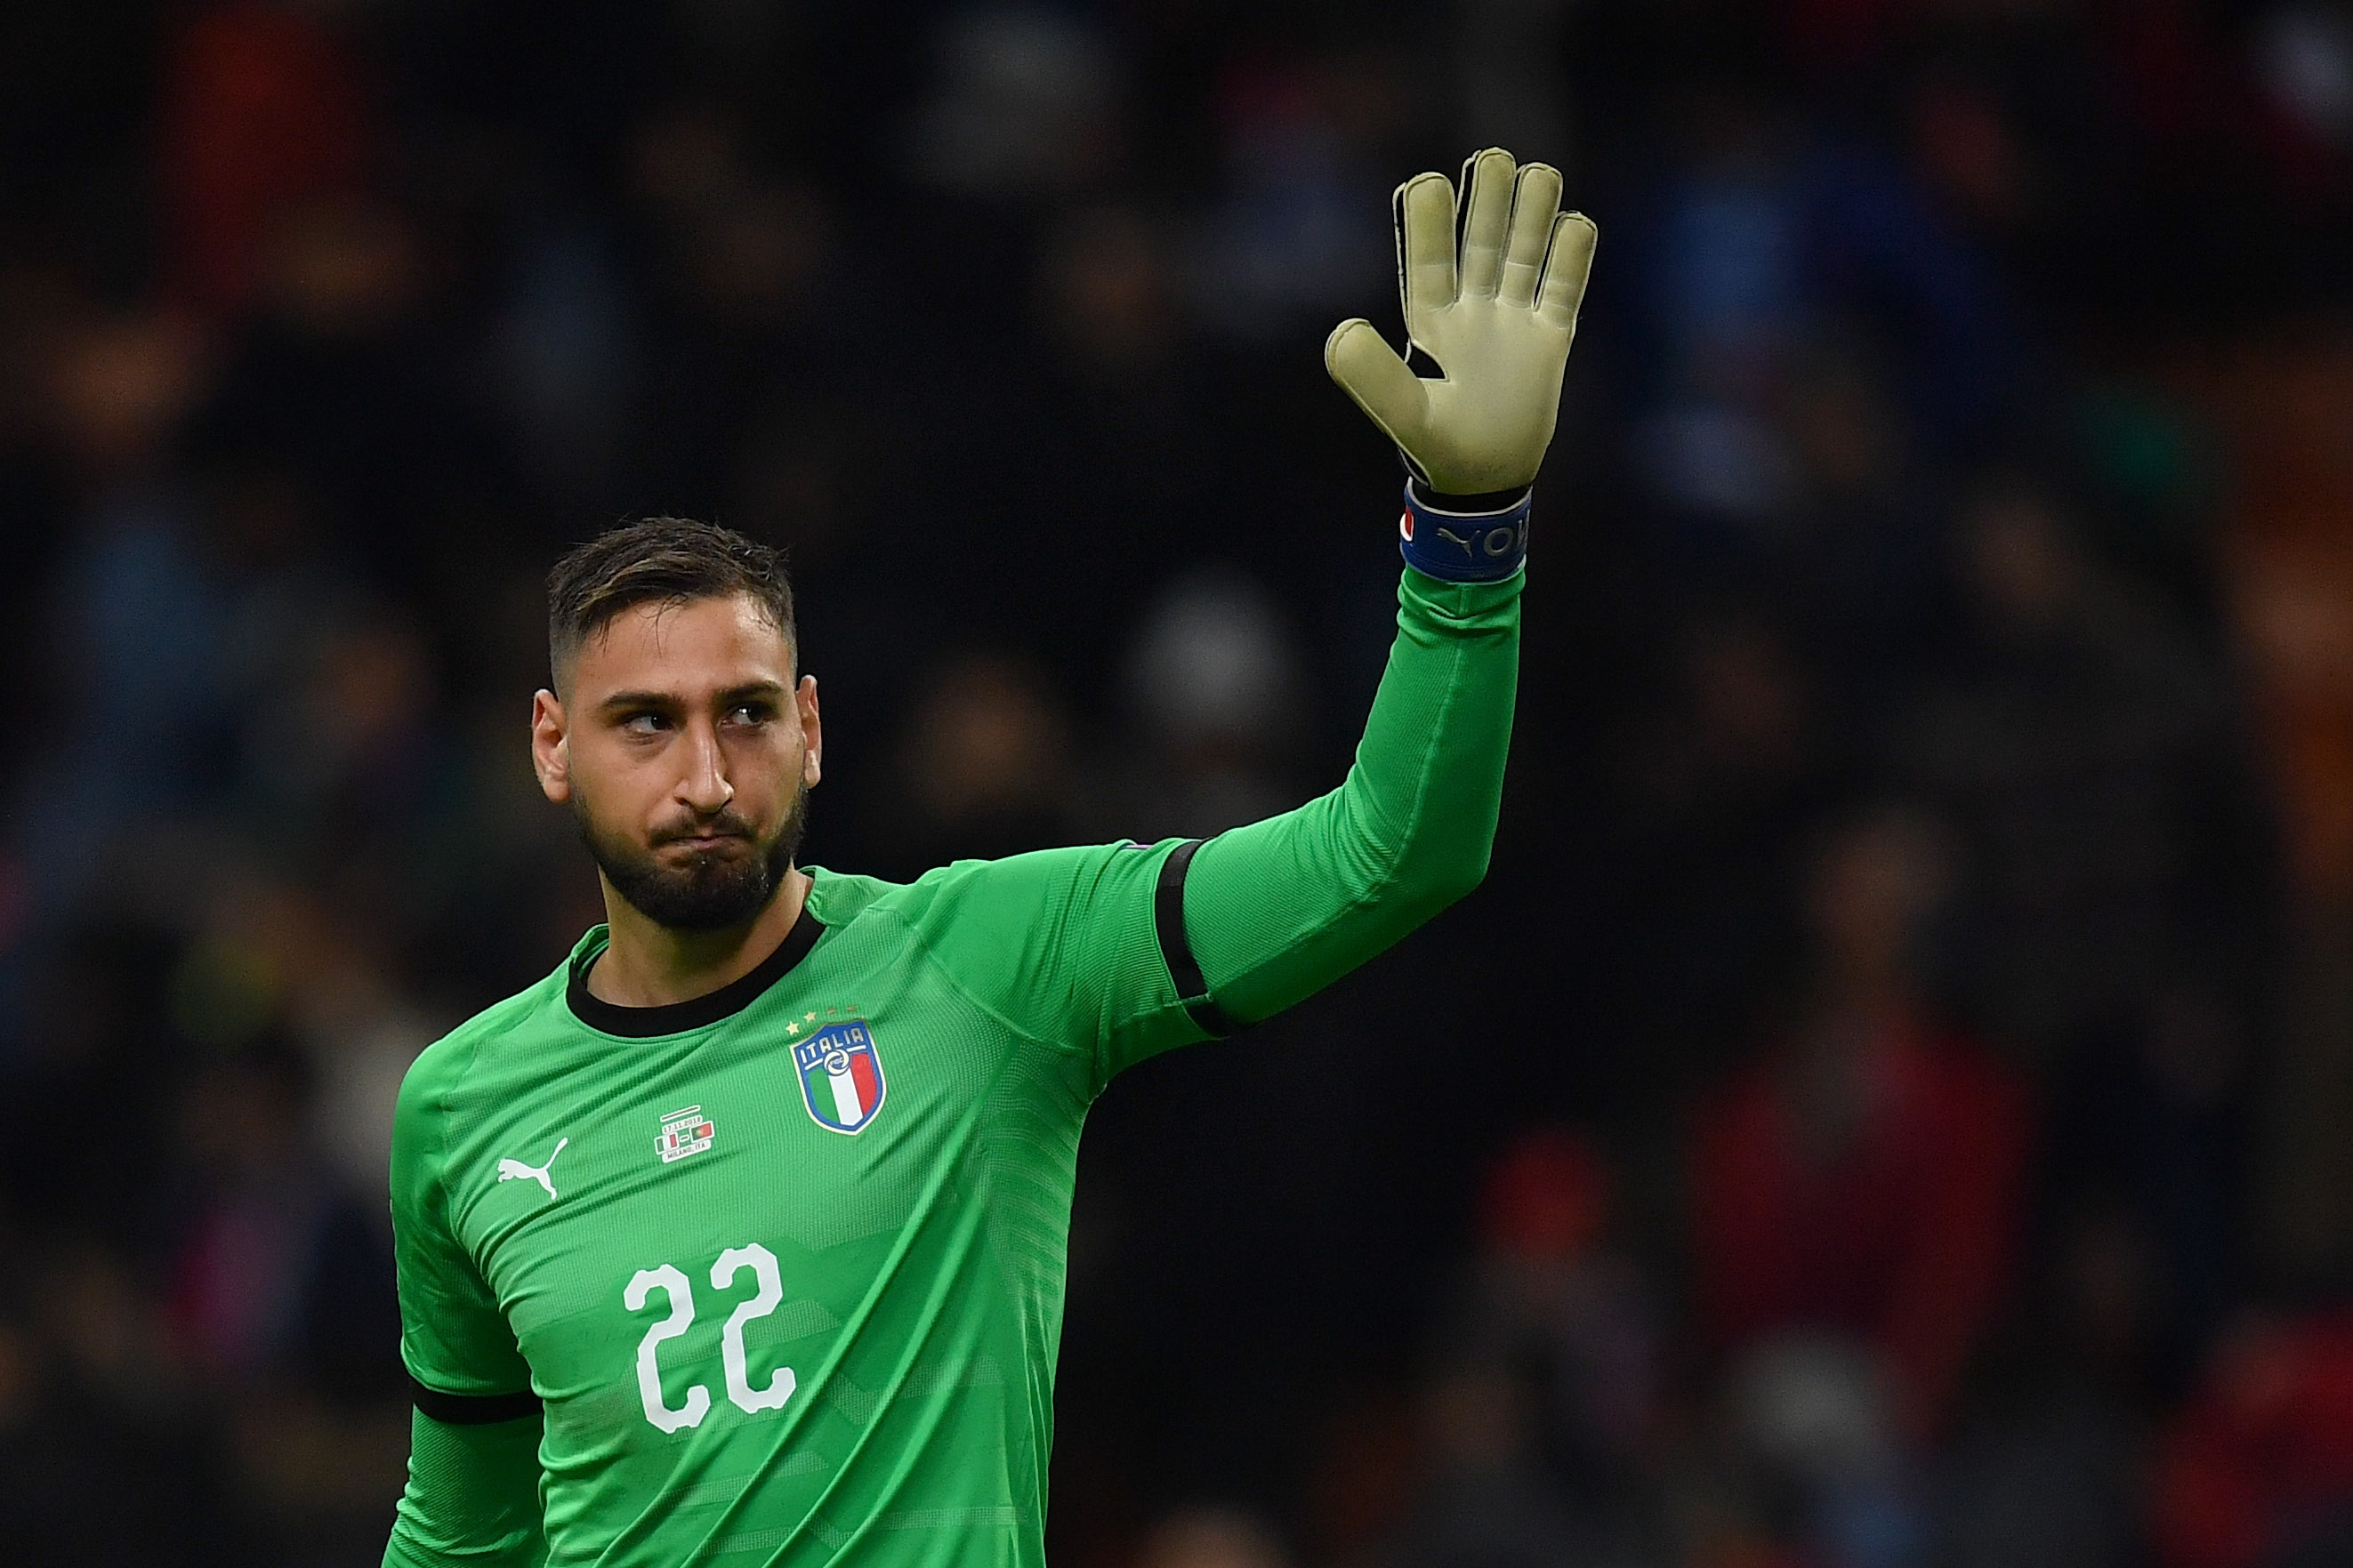 Donnarumma To Start For Italy Romagnoli On The Bench